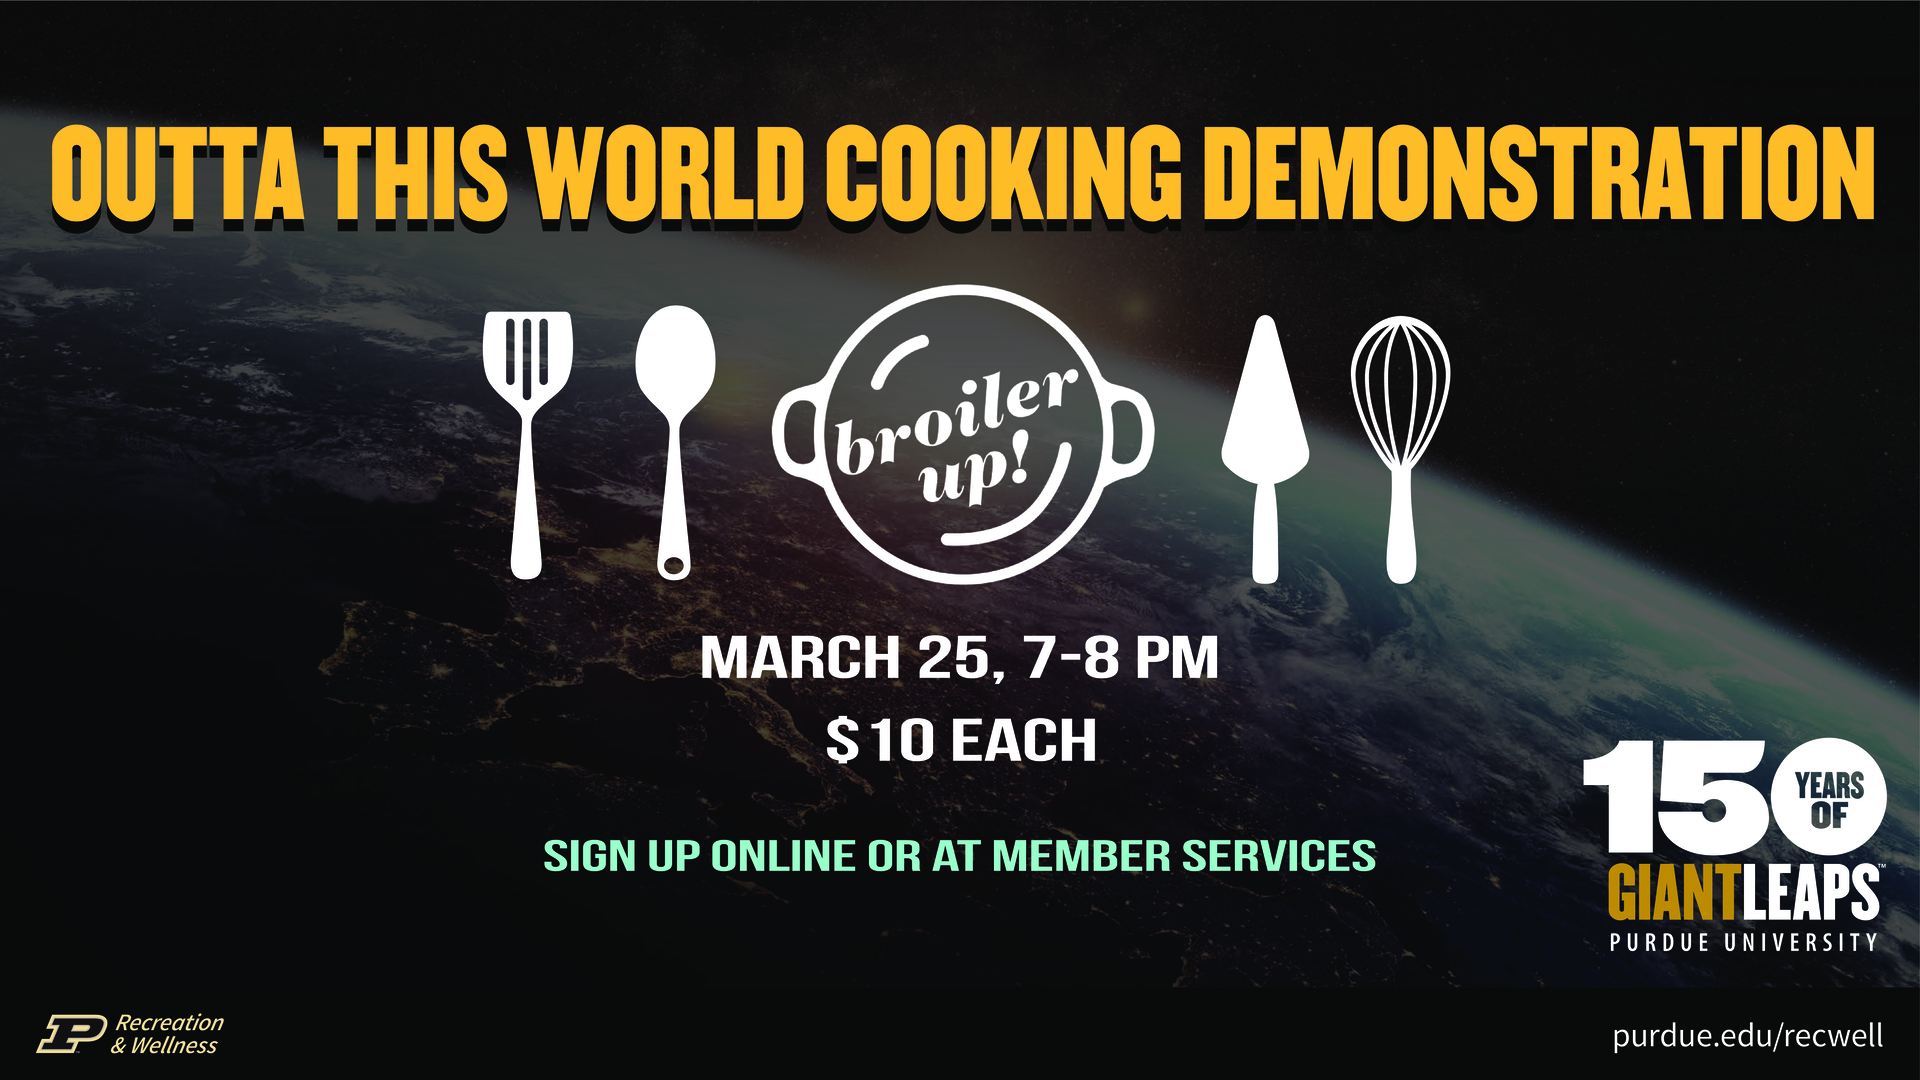 Information regarding Outta This World Cooking Demonstration is as follows End Date is March 25 2019 and Start date is March 11 2019 and File is Browse and File Name is Outta-This-World-Demo_comp.jpg and Panel is Main and Name is Michelle Singleton and Email is msingleton@purdue.edu and Name of Ad/Event is Outta This World Cooking Demonstration and Affiliation is Purdue Department and Group Name is Recreation and Wellness and